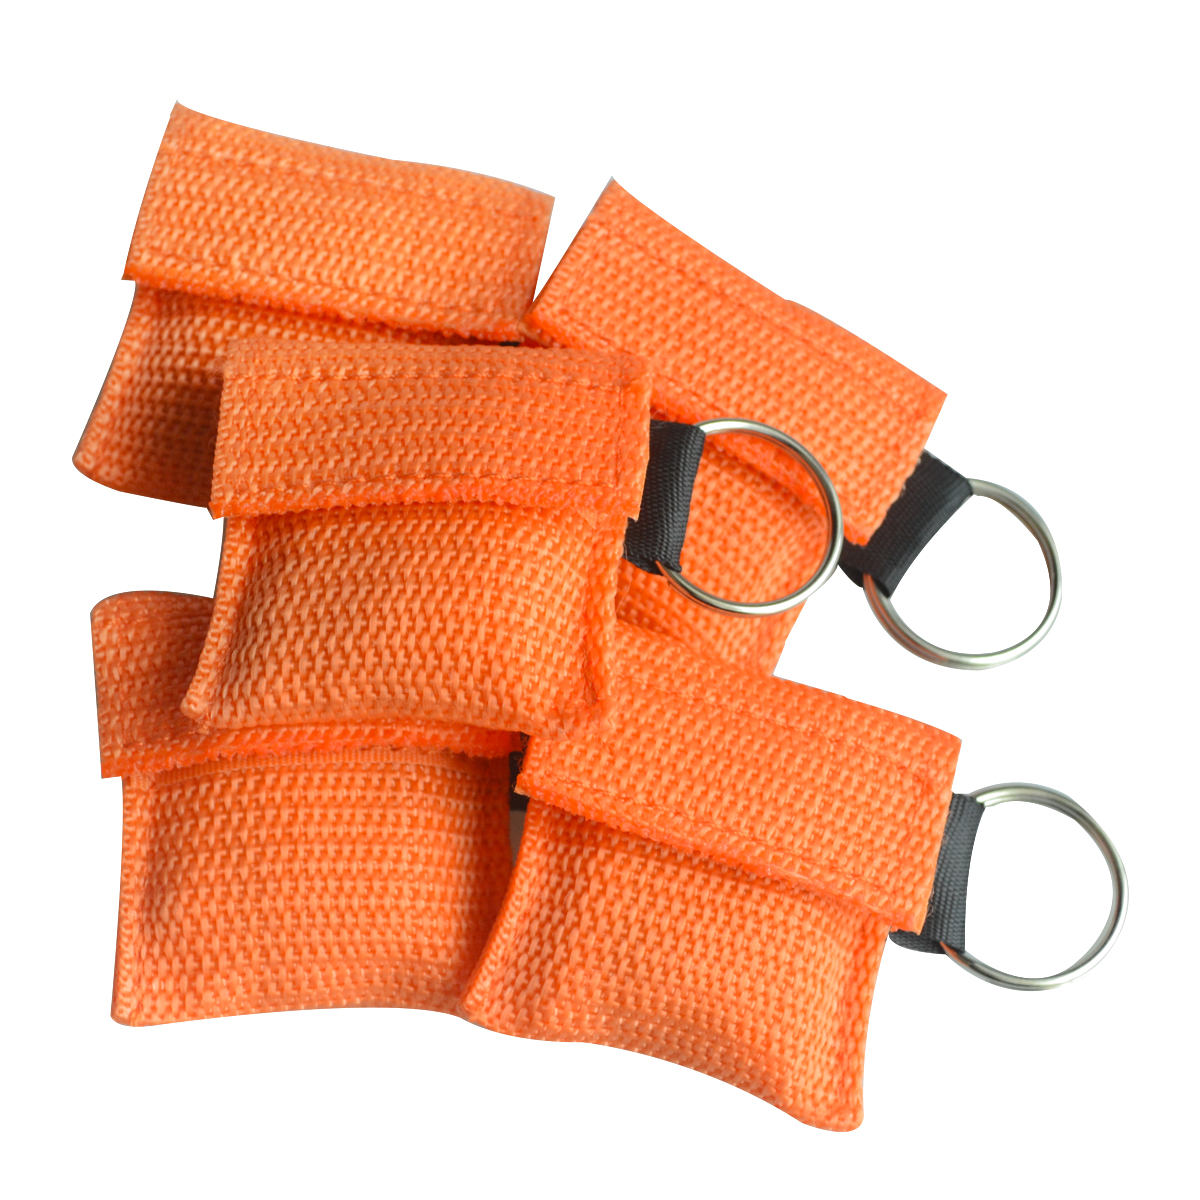 50Pcs/Lot CPR Resuscitator Mask Keychain CPR Face Shield Emergency Rescue Kit For First Aid CPR/AED With Orange Pouch Wraped 500pcs pack cpr resuscitator cpr face protect mask with keychain key ring for first aid training teaching kit emergency use